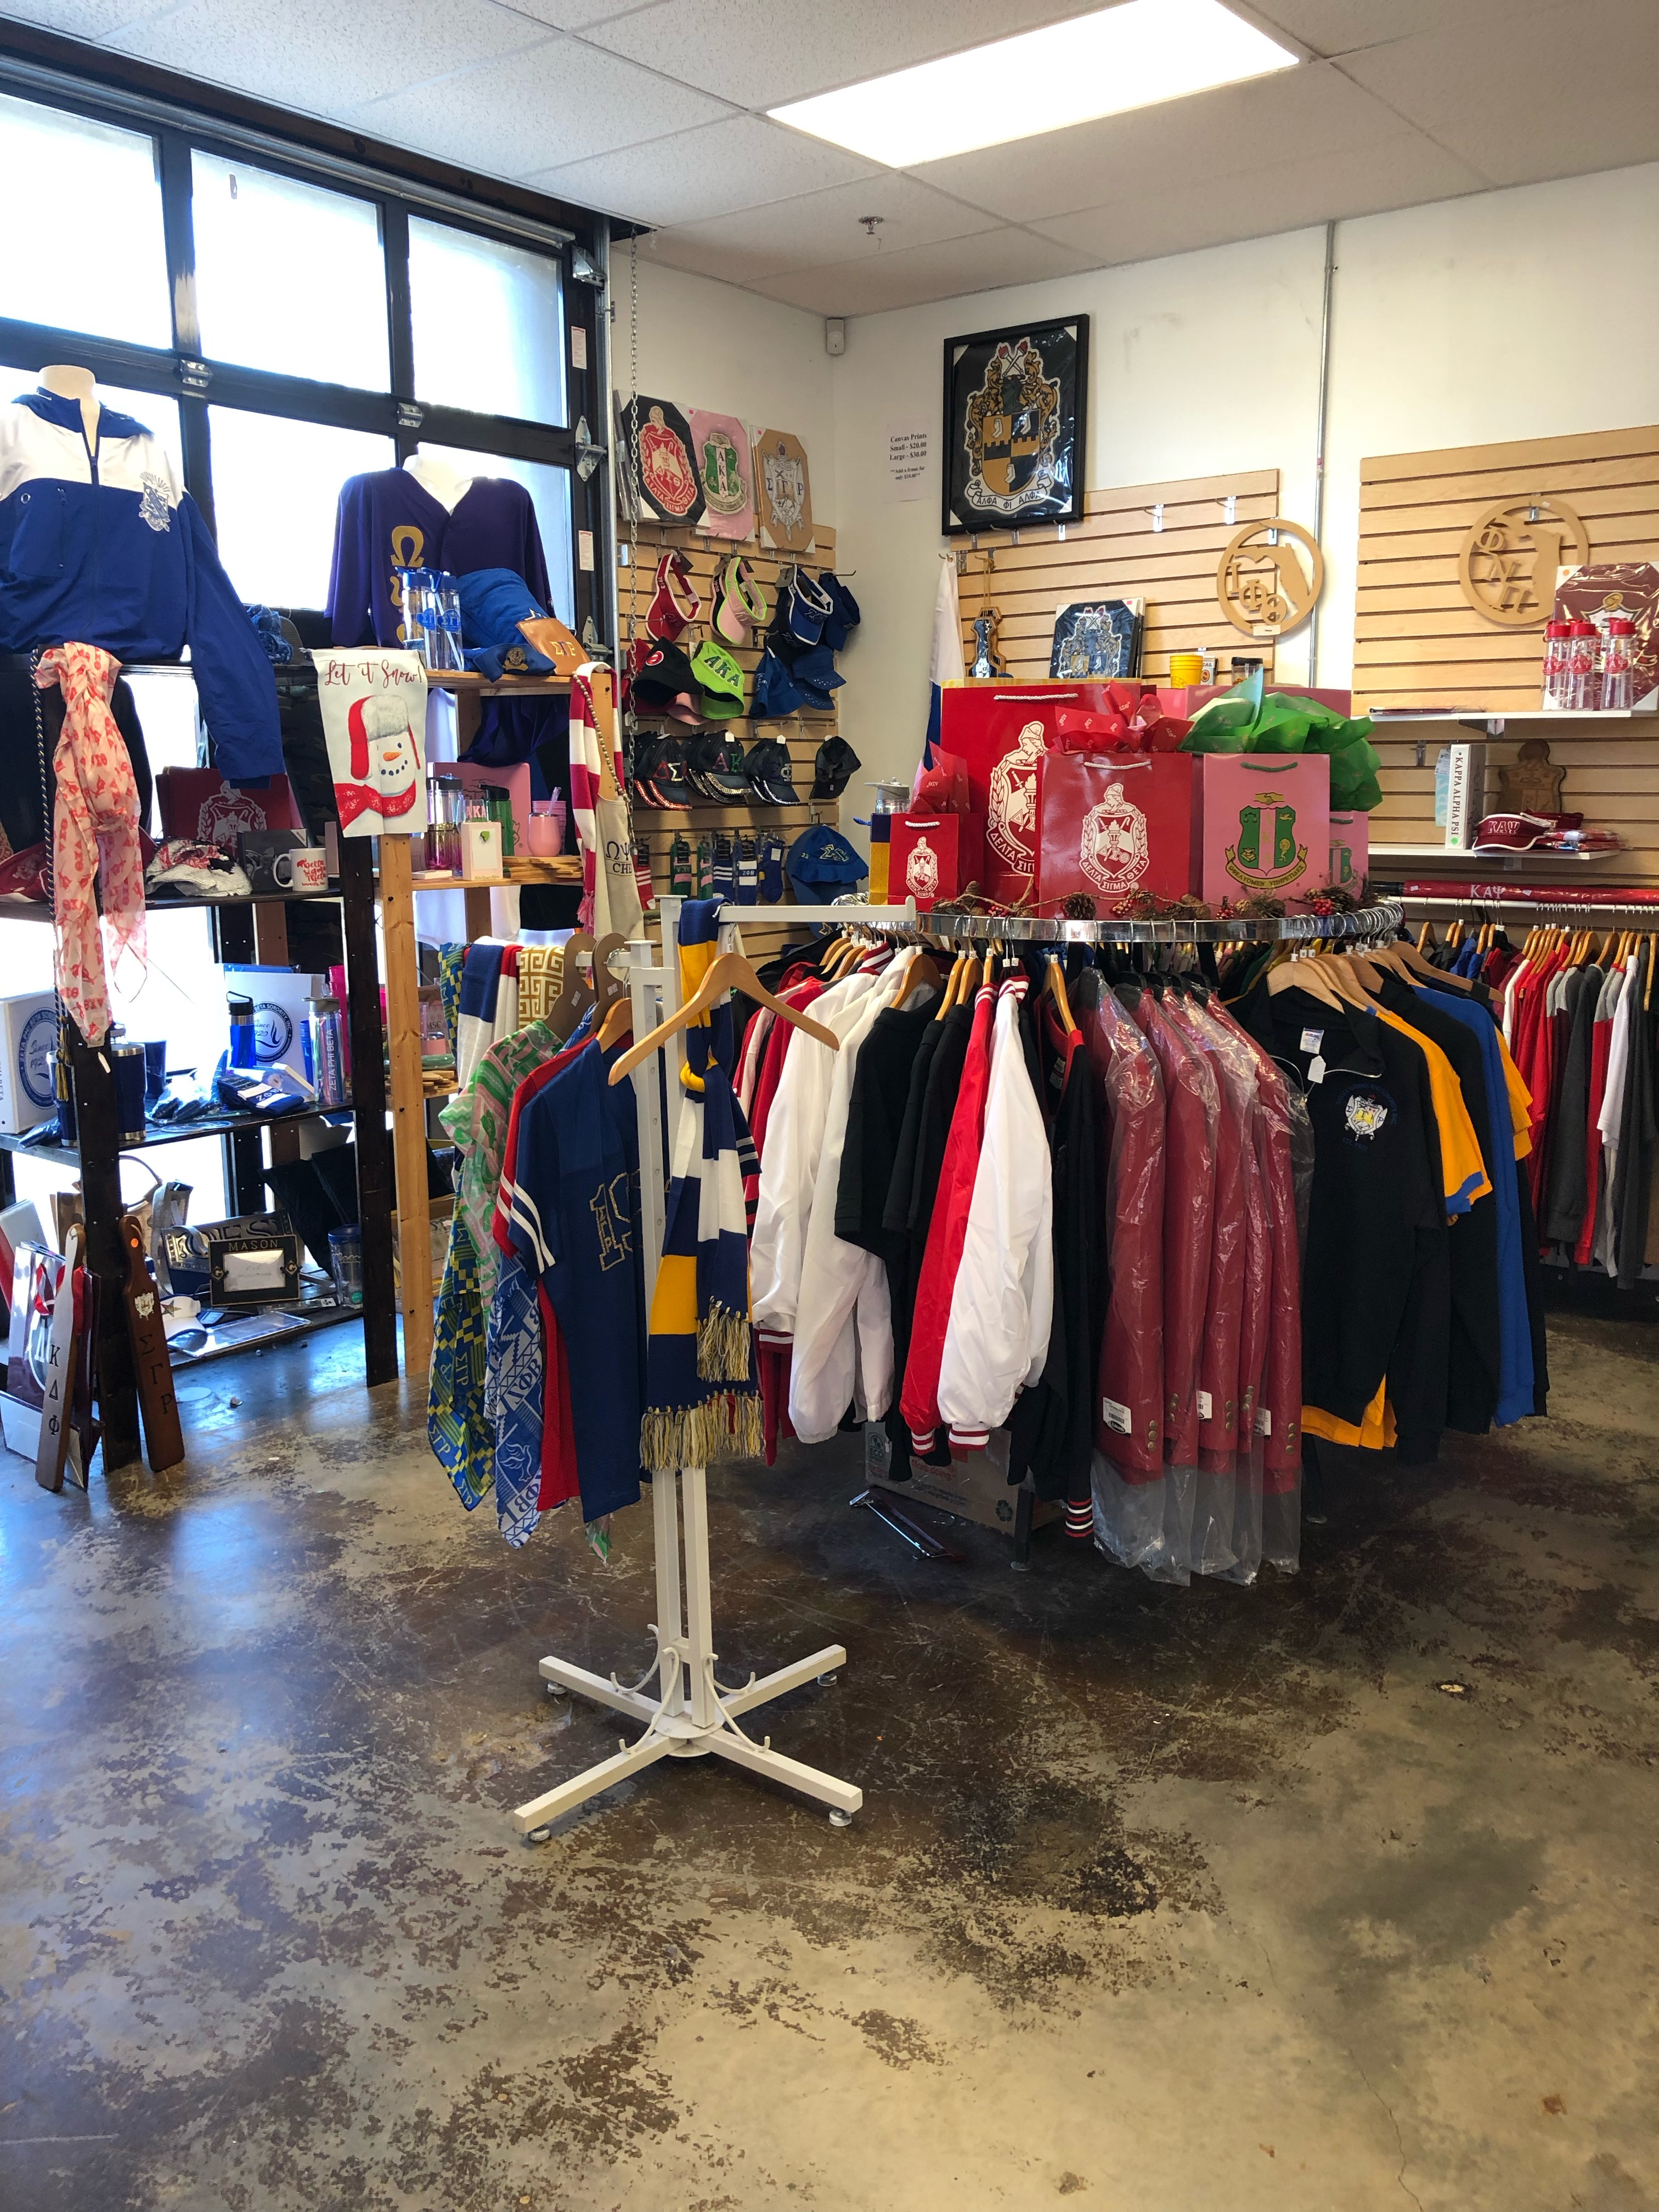 Campus Greek & Embroidery Shop caters to both sides of the